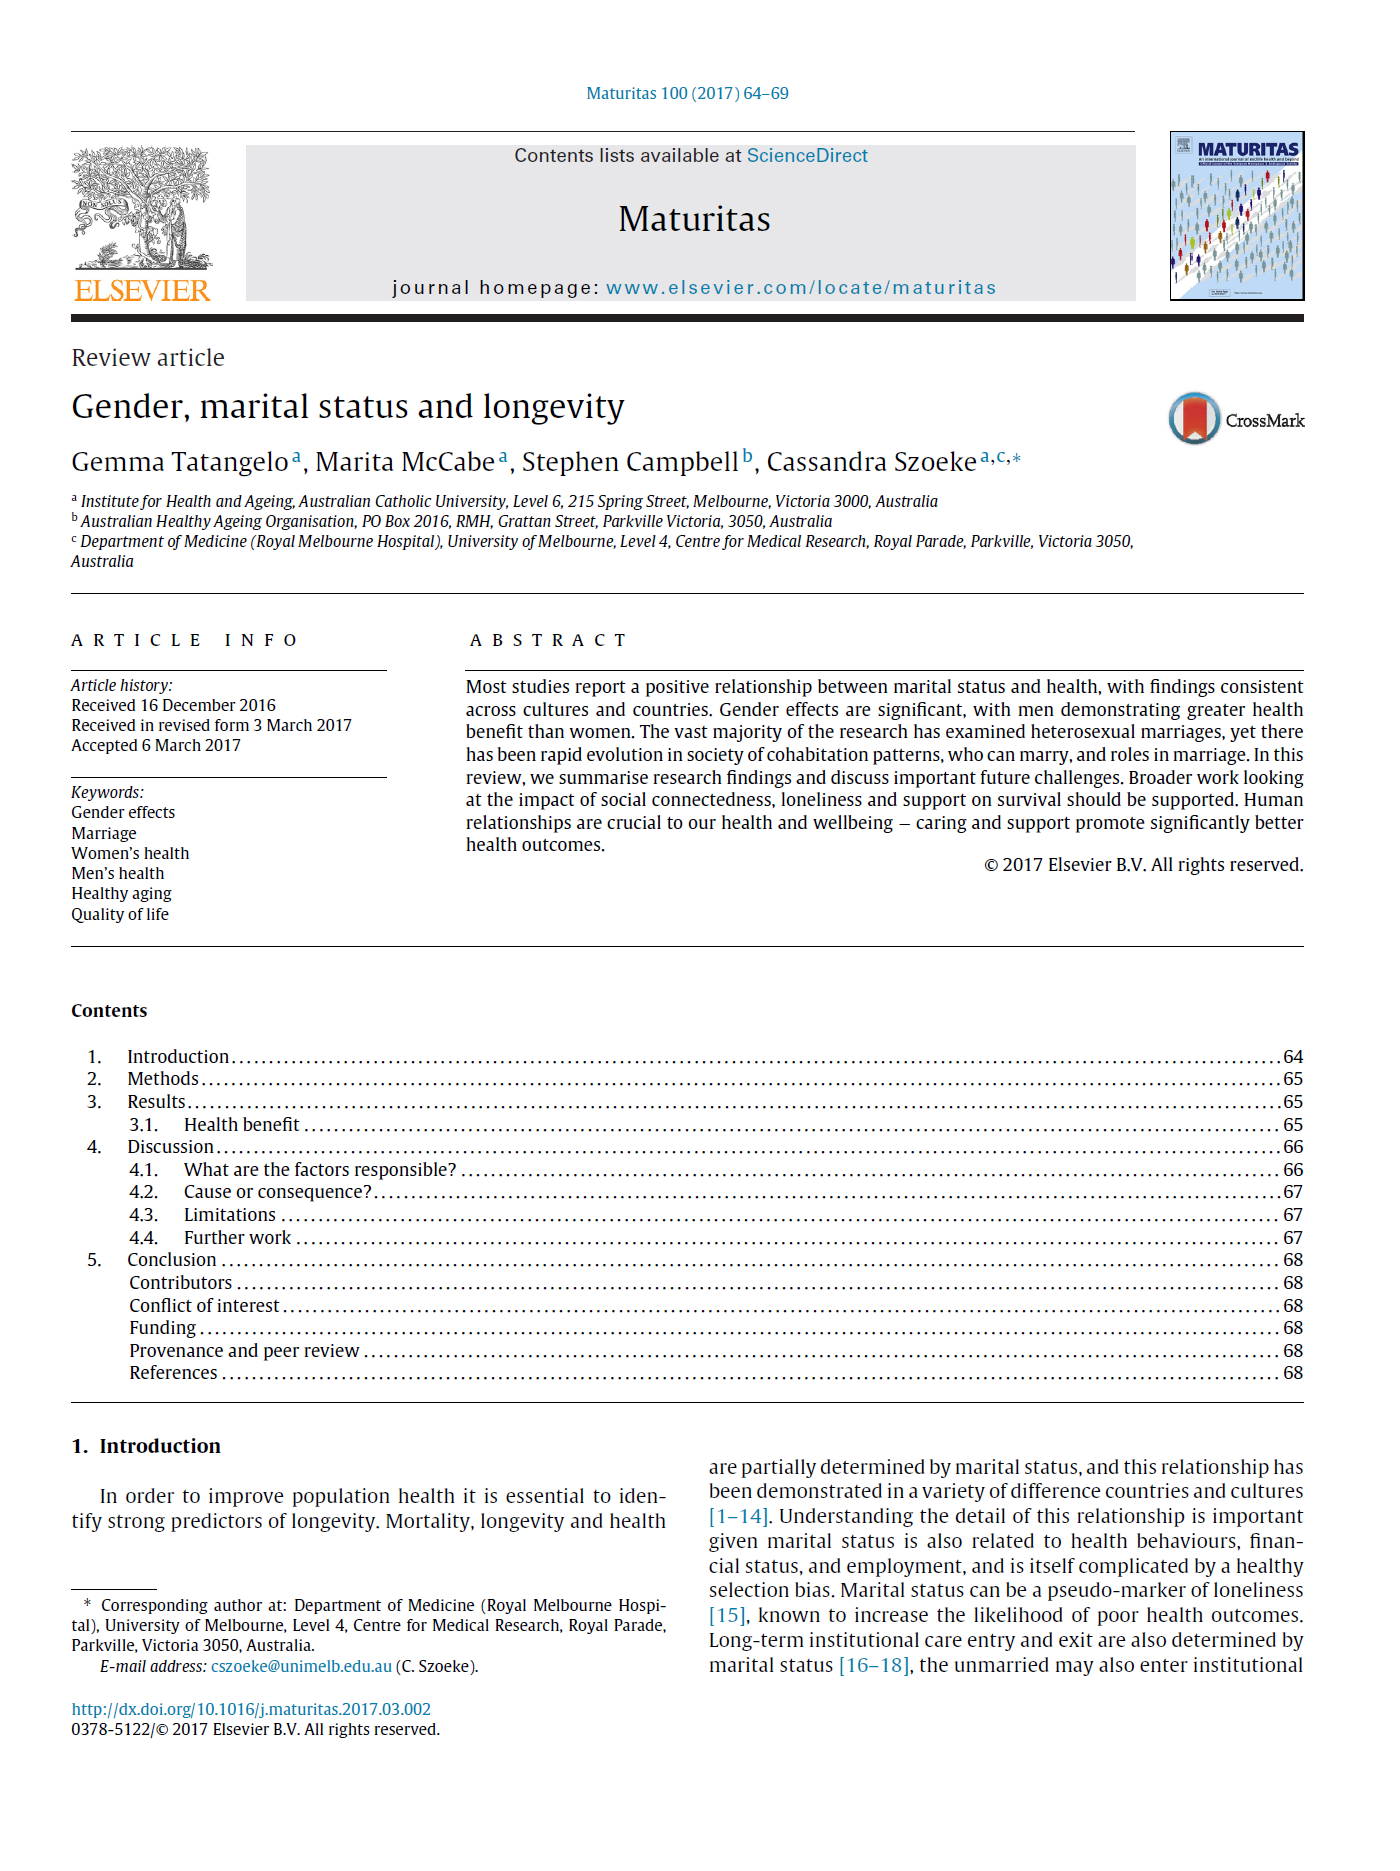 Gender, marital status and longevity - This review discusses research on the relationship between marital status and health, including the differences in effect due to gender. The authors note that future research must consider the changes in who can marry, cohabitation patterns, and roles within relationships that have occurred over the recent decades.Citation: Tatangelo, G., et al (2017). Gender, marital status and longevity.Maturitas, 100, 64-69. doi:10.1016/j.maturitas.2017.03.002